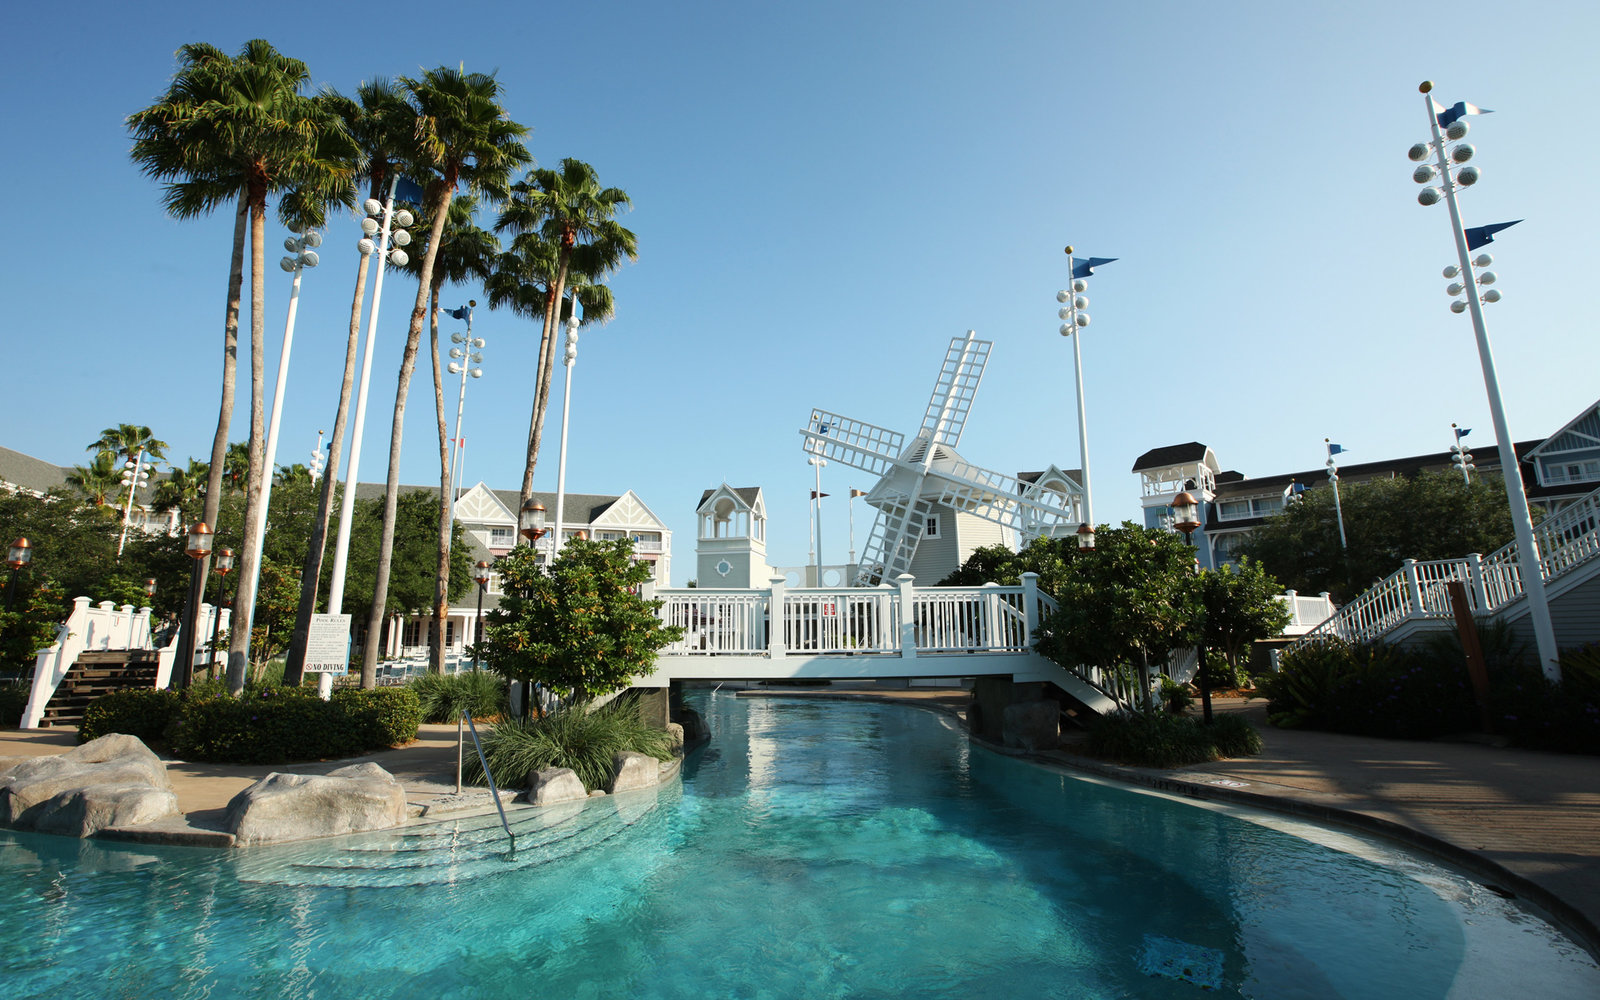 Disney's Beach Club and Yacht Club Resorts